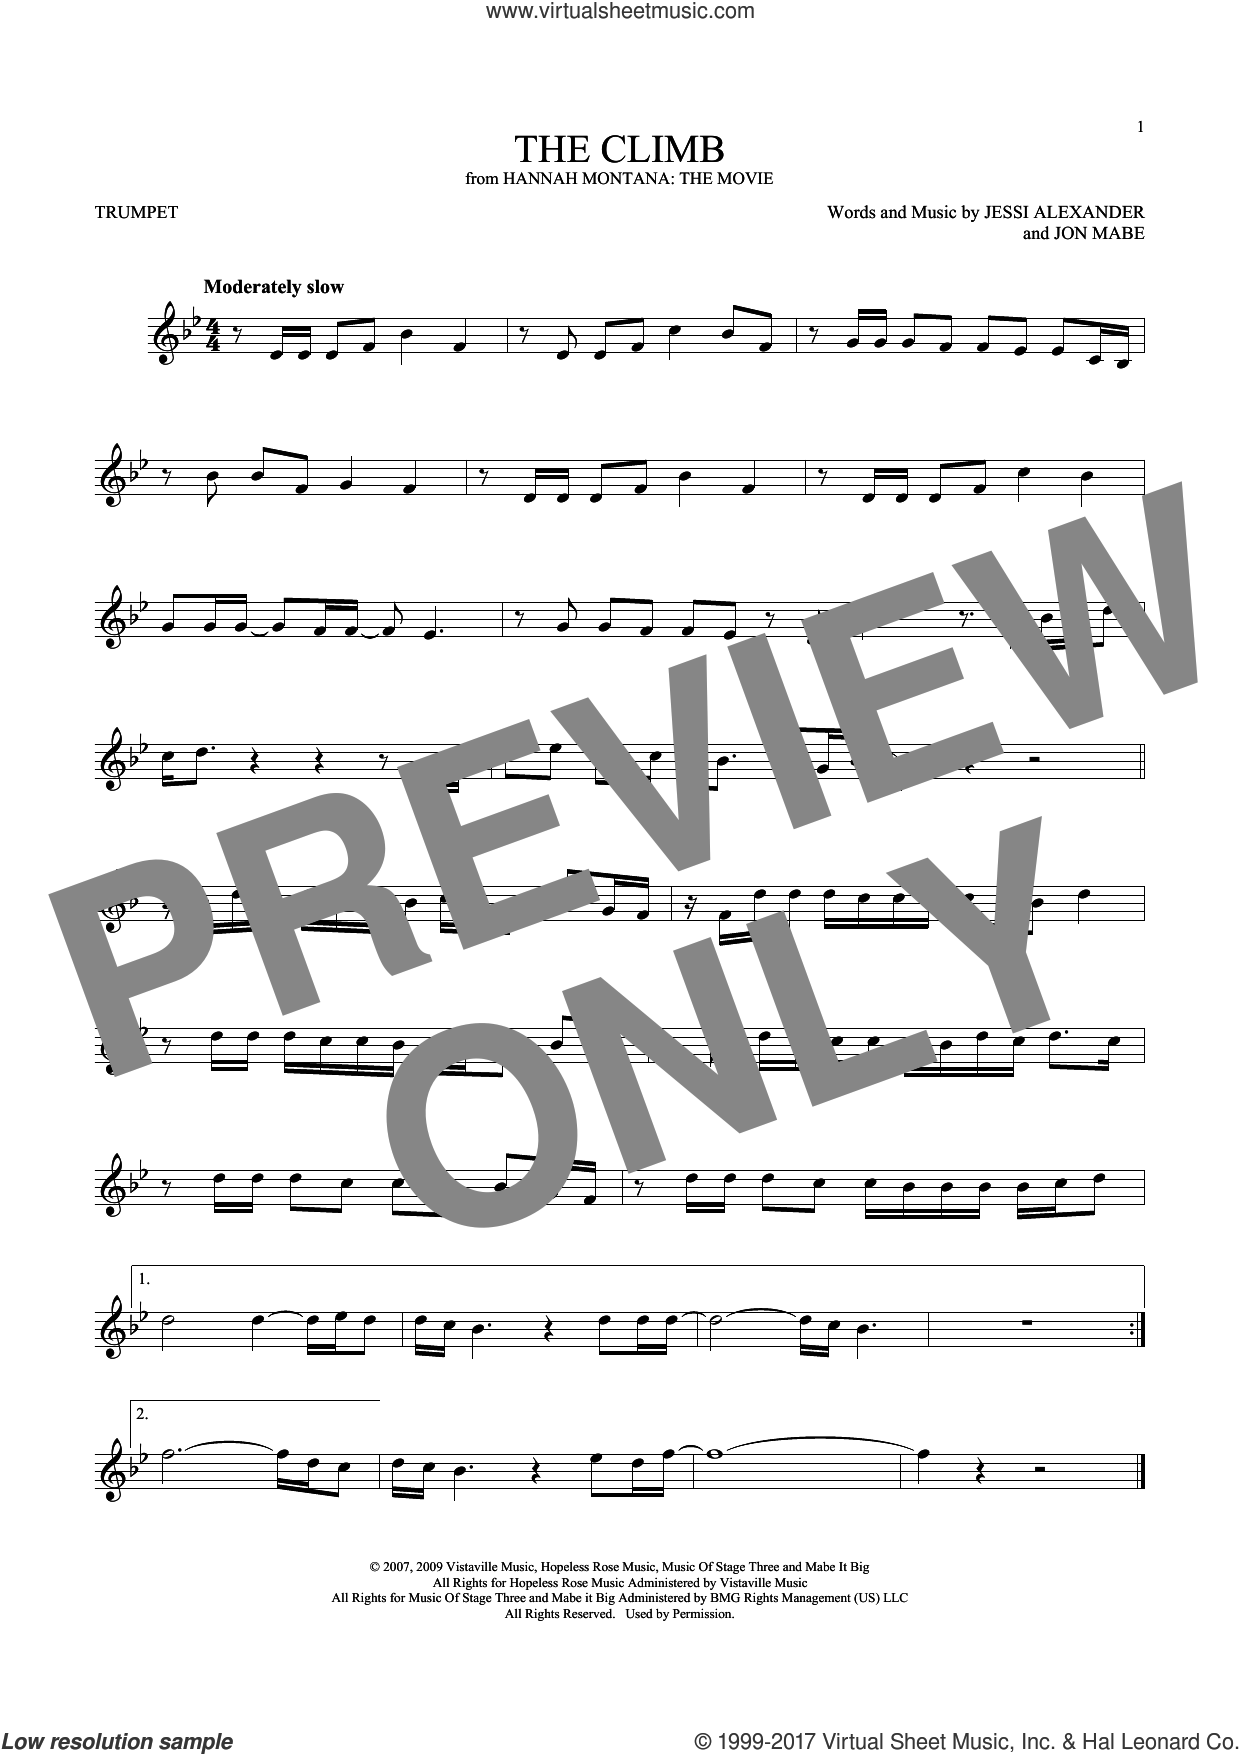 The Climb sheet music for trumpet solo by Miley Cyrus, Jessi Alexander and Jon Mabe, intermediate skill level